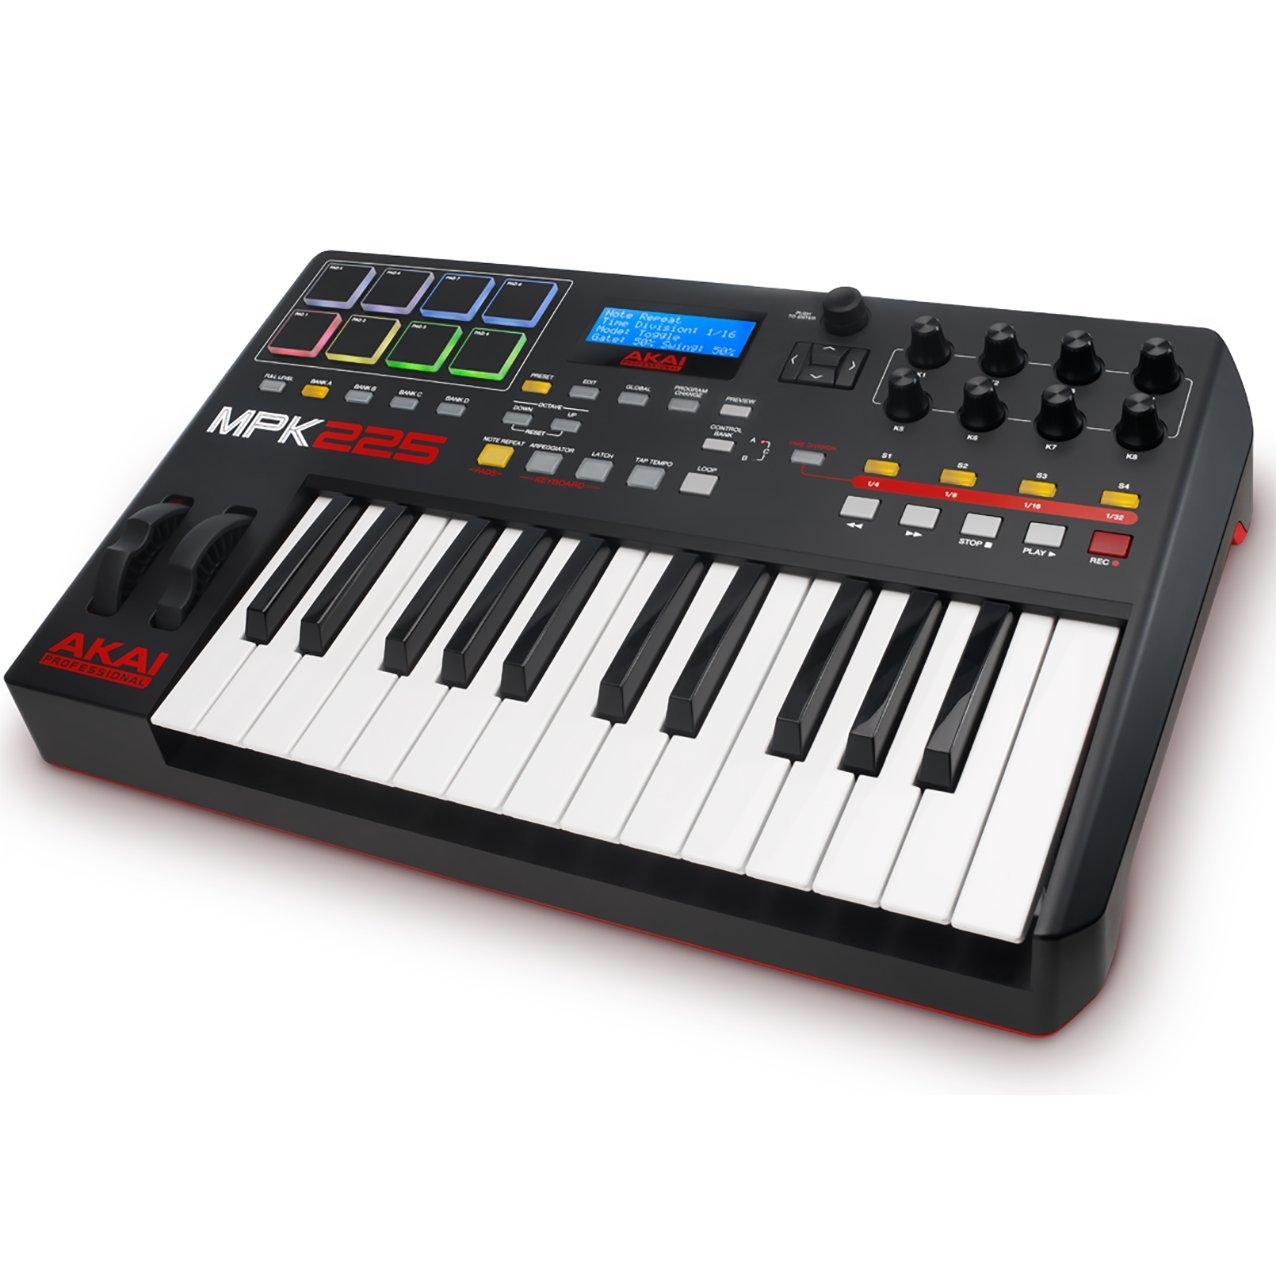 Akai Professional MPK225 | Compact 25-Key Semi-Weighted USB MIDI Keyboard Controller Including Core Control From The MPC Workstations by Akai Professional